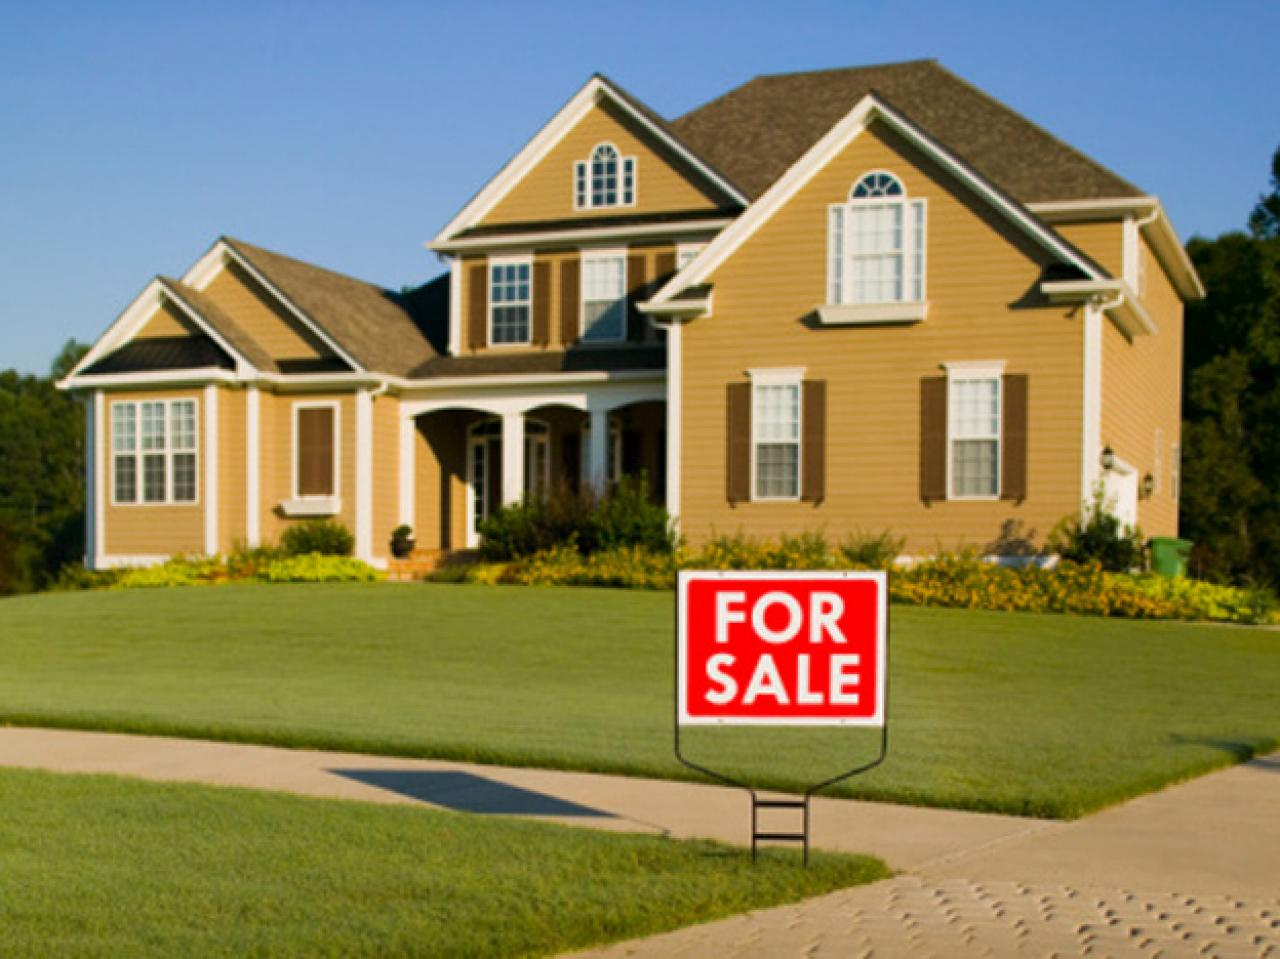 Real Estate Signage That Sells Property In No Time